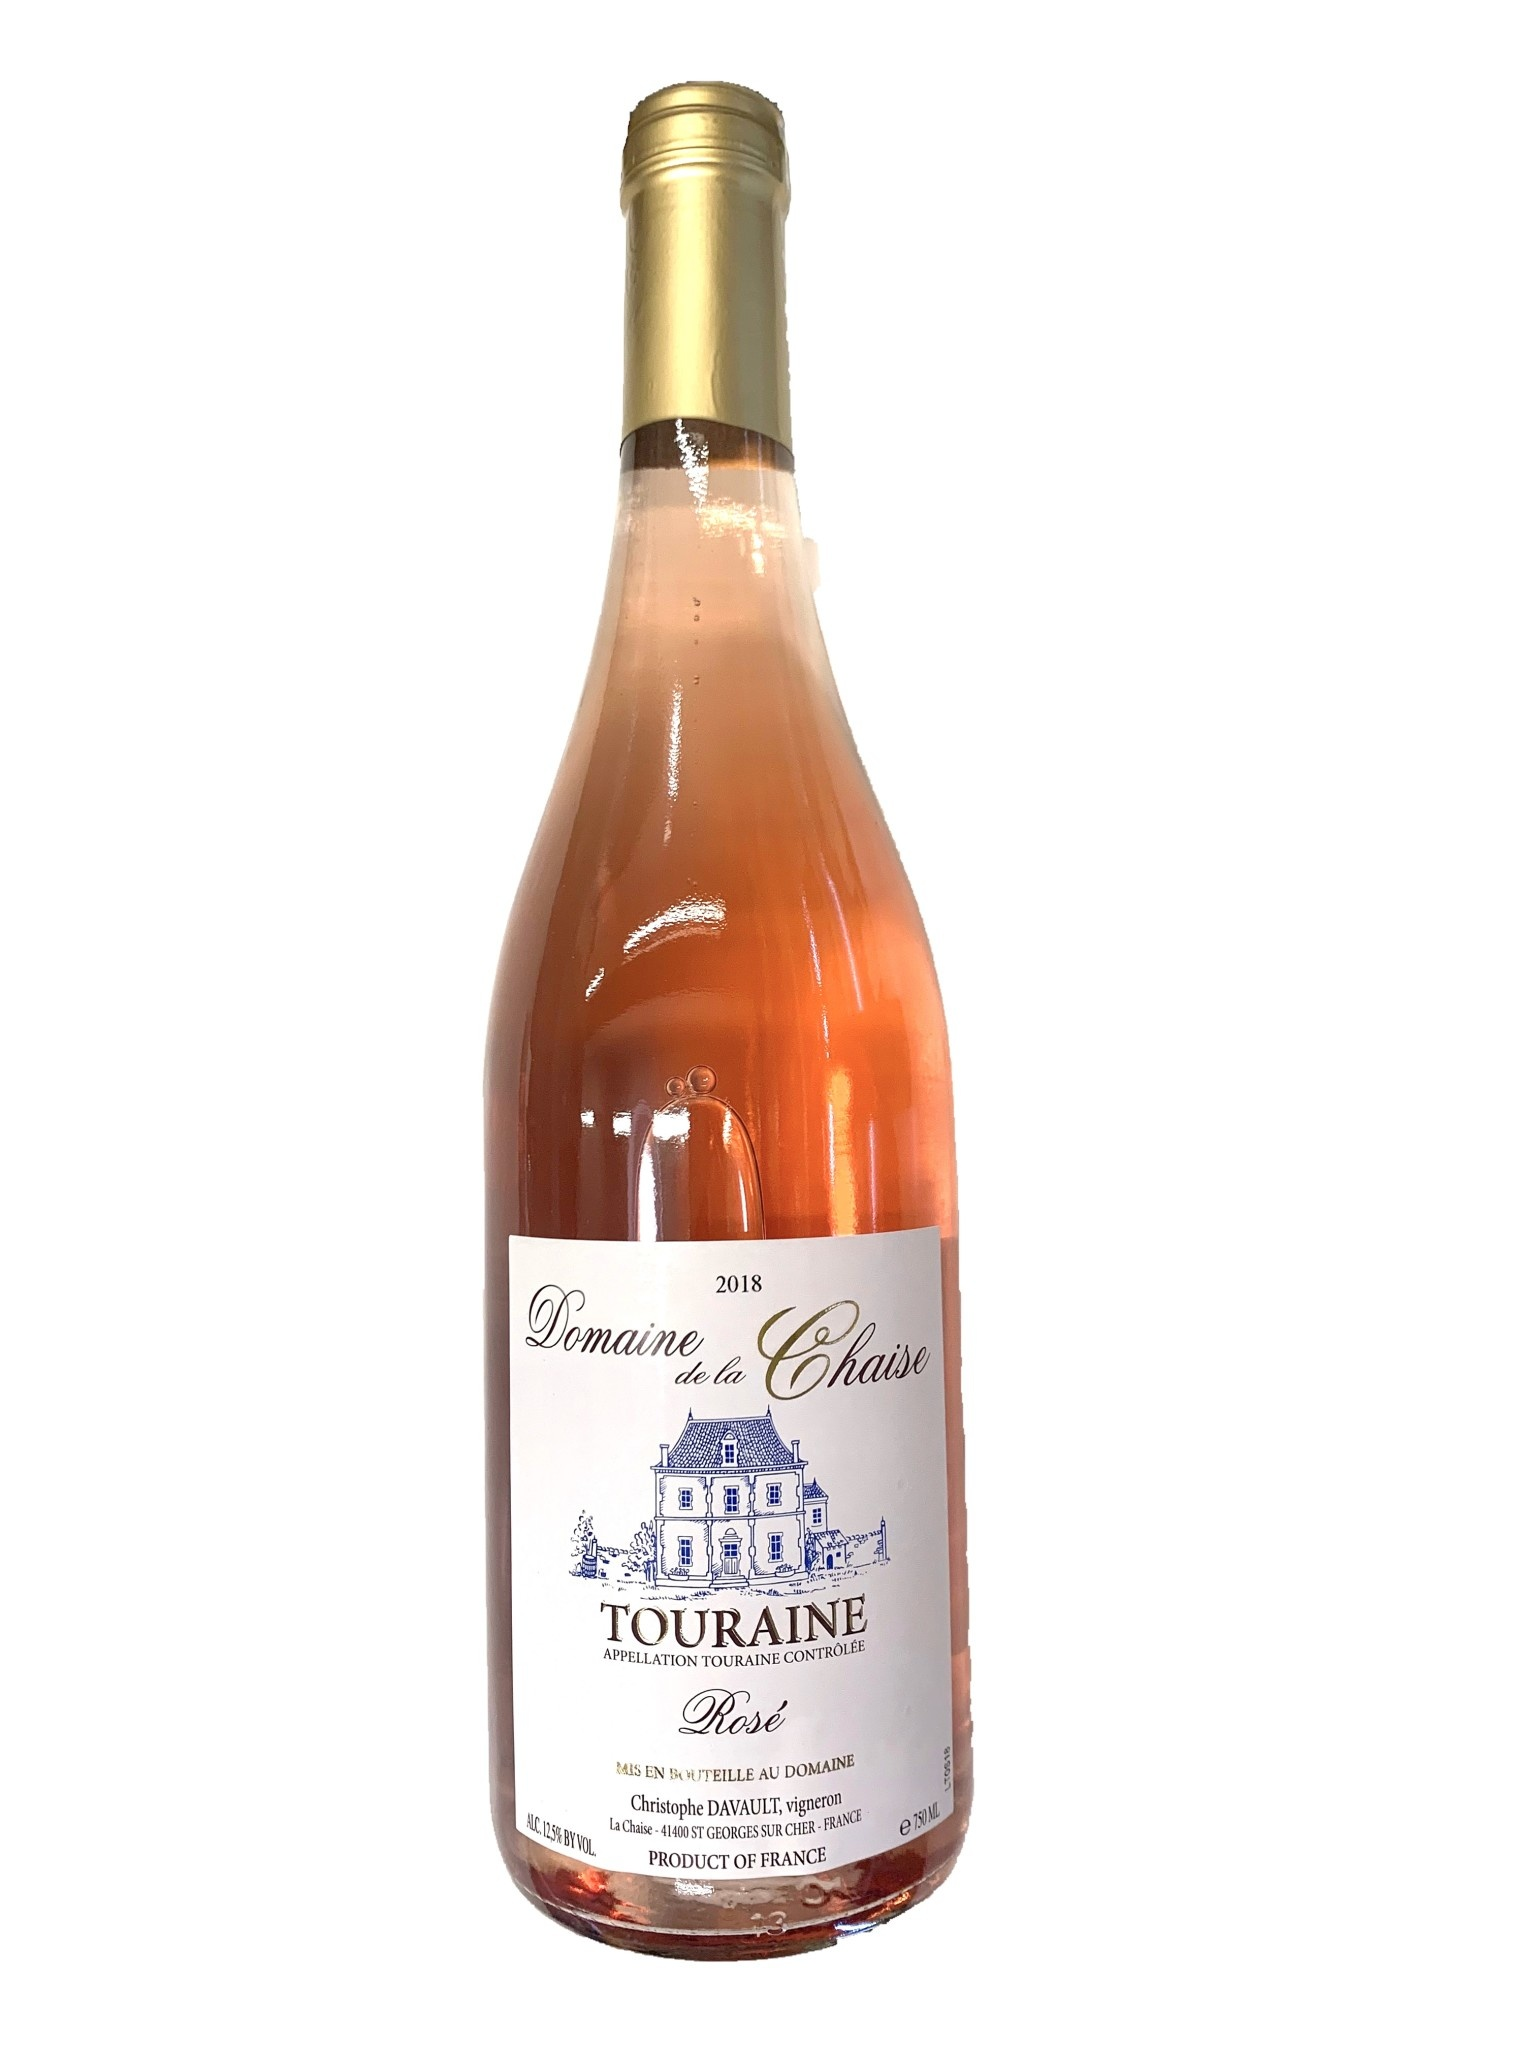 France Domaine de la Chaise rosé Touraine  2018